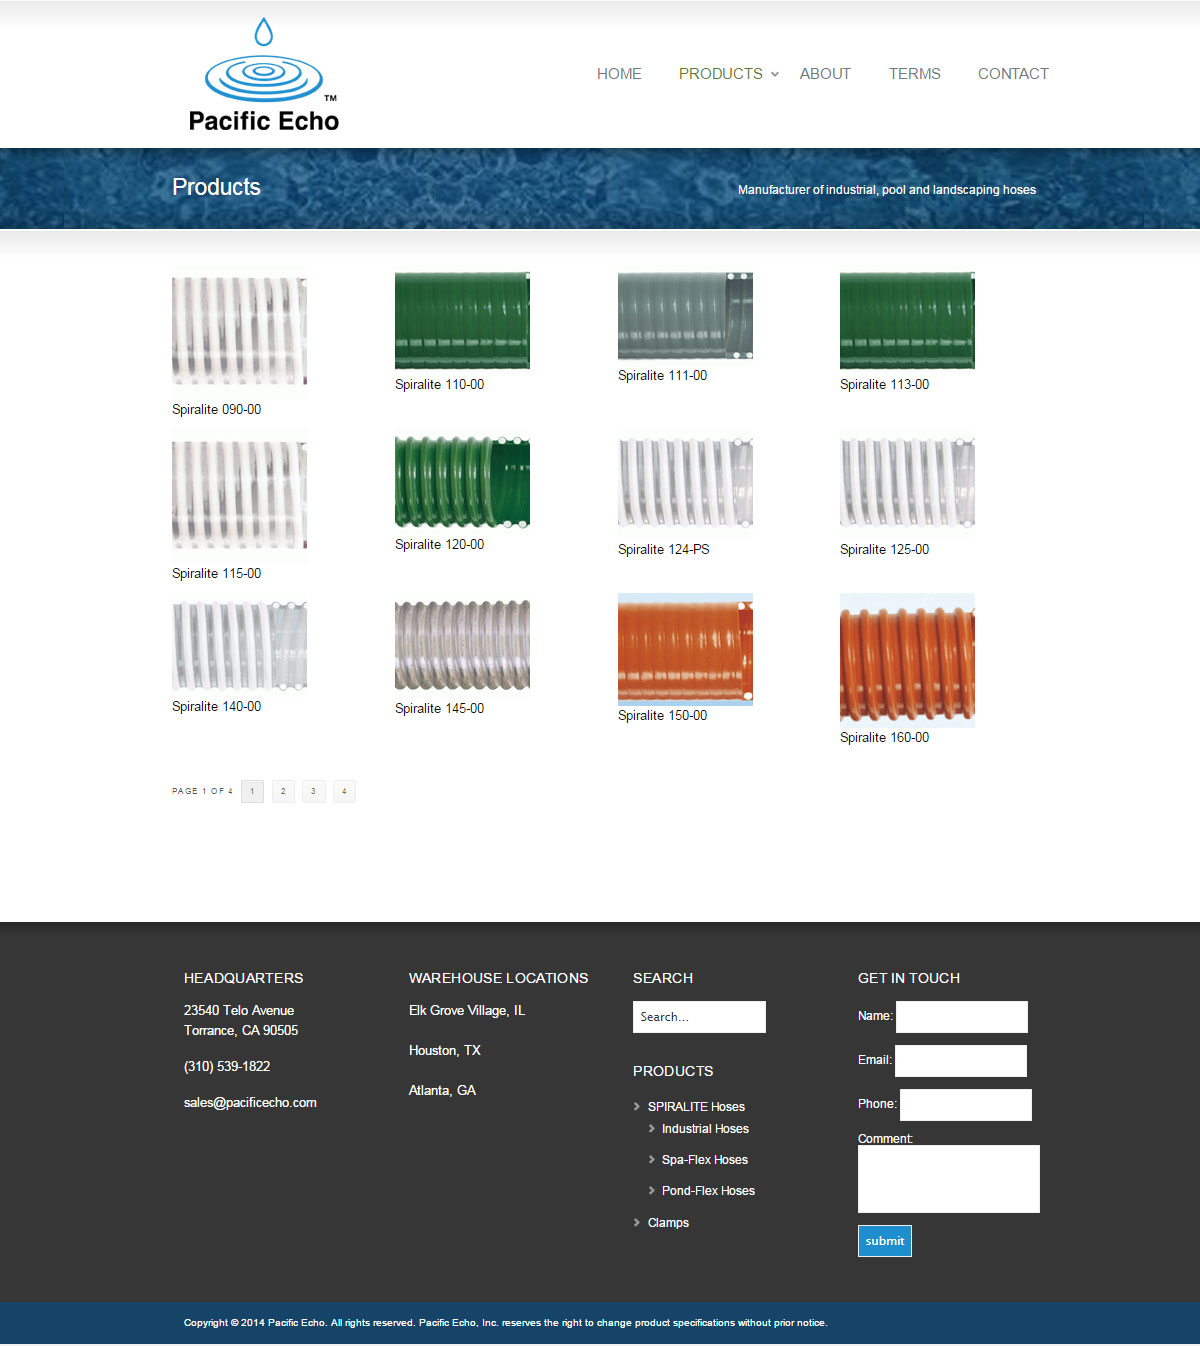 Pacific Echo products category page